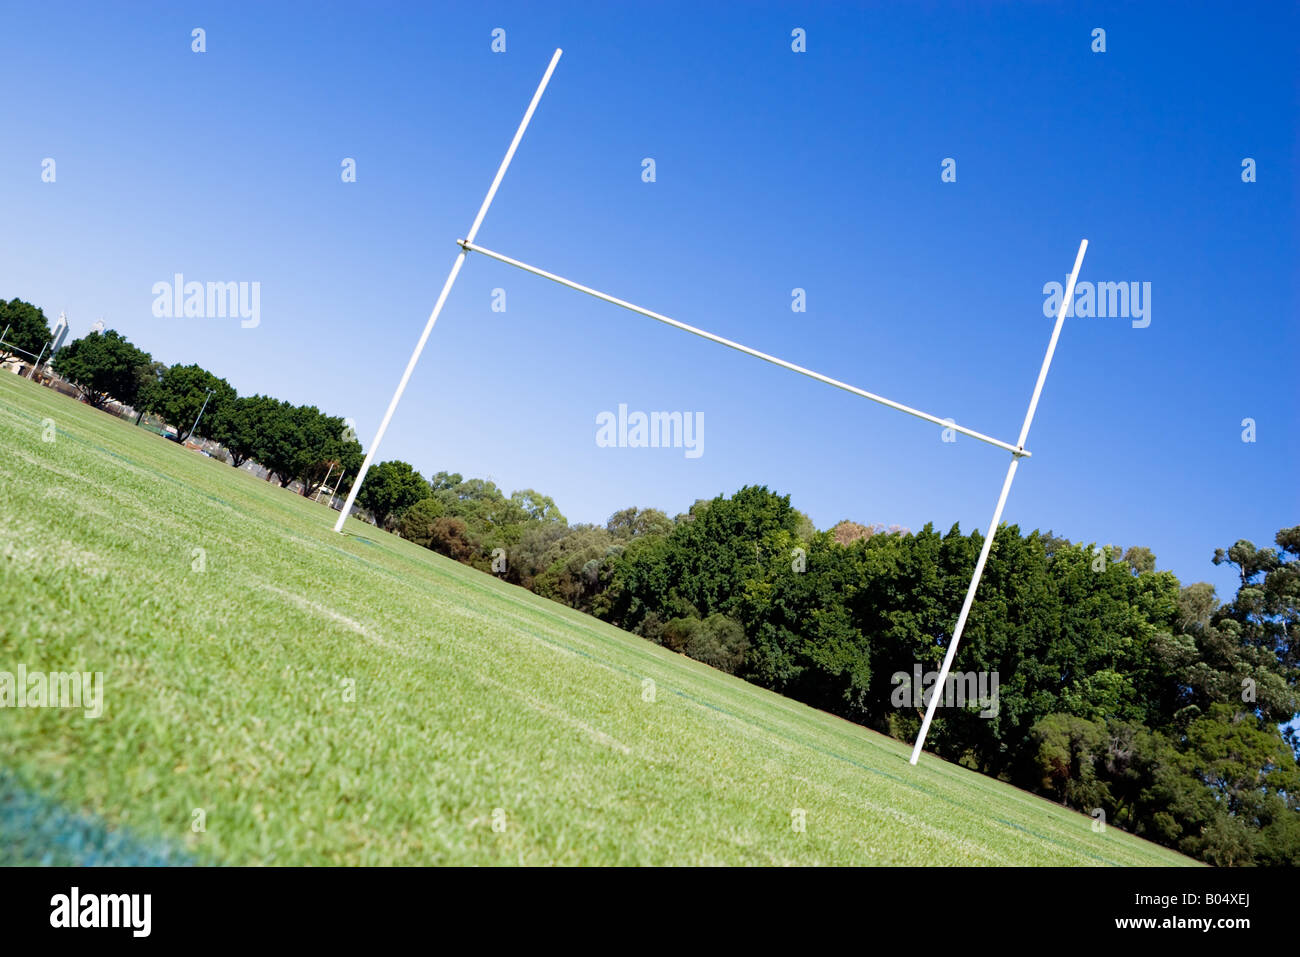 Looking up towards rugby posts. Composed on an angle to give a dynamic, in the heart of the action look. - Stock Image